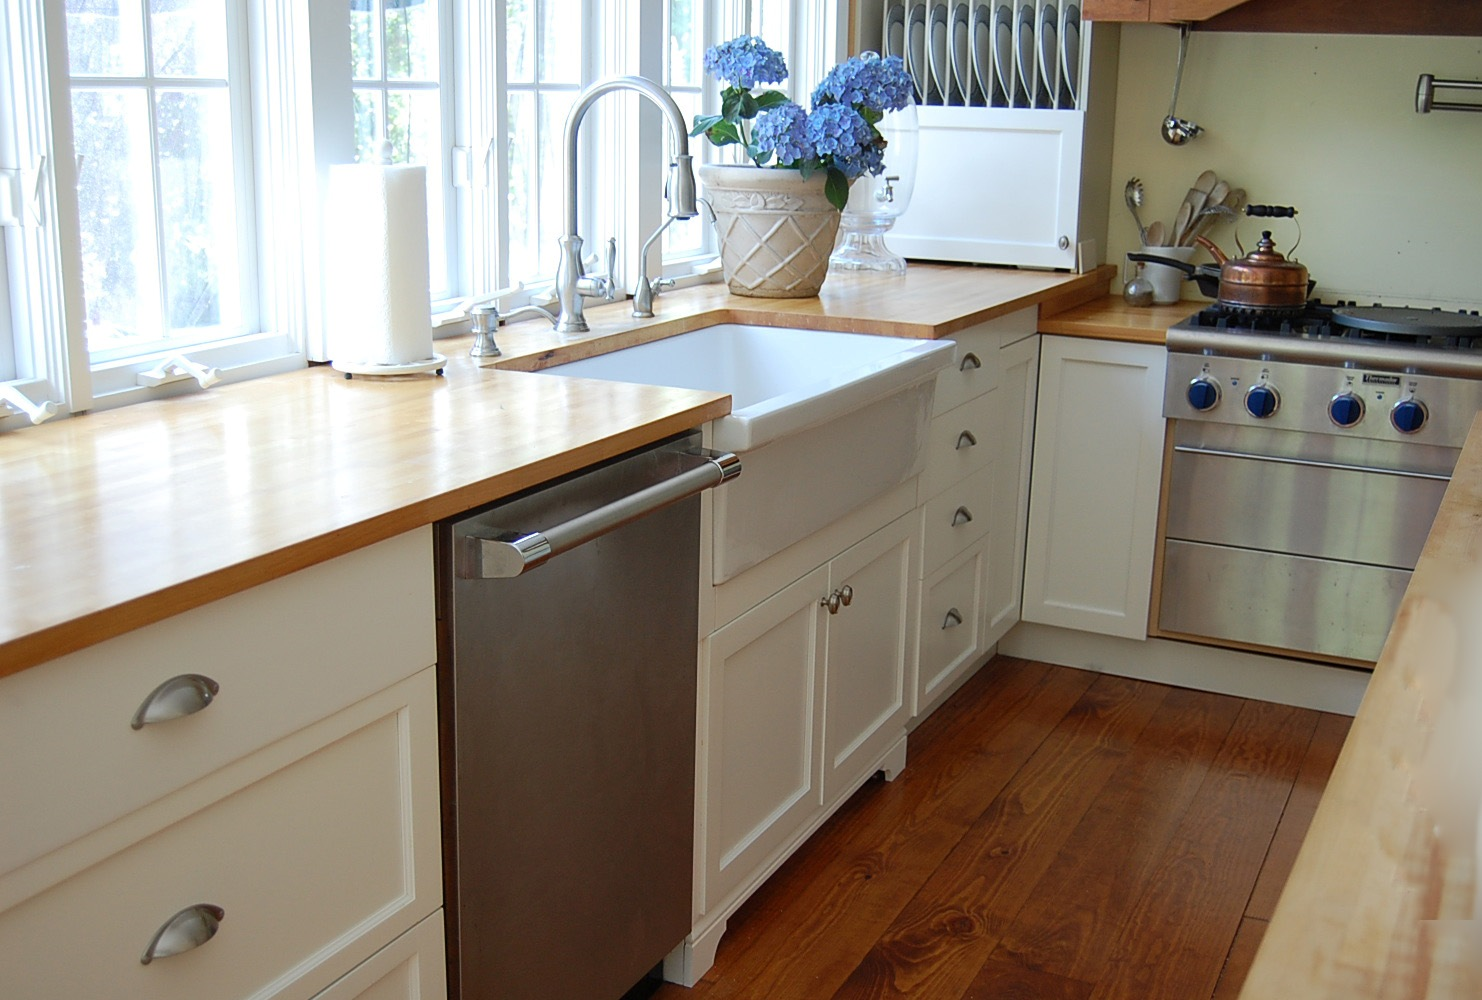 Sink Kitchen Faucet Ikea Kitchen Sink Kitchen Ideas